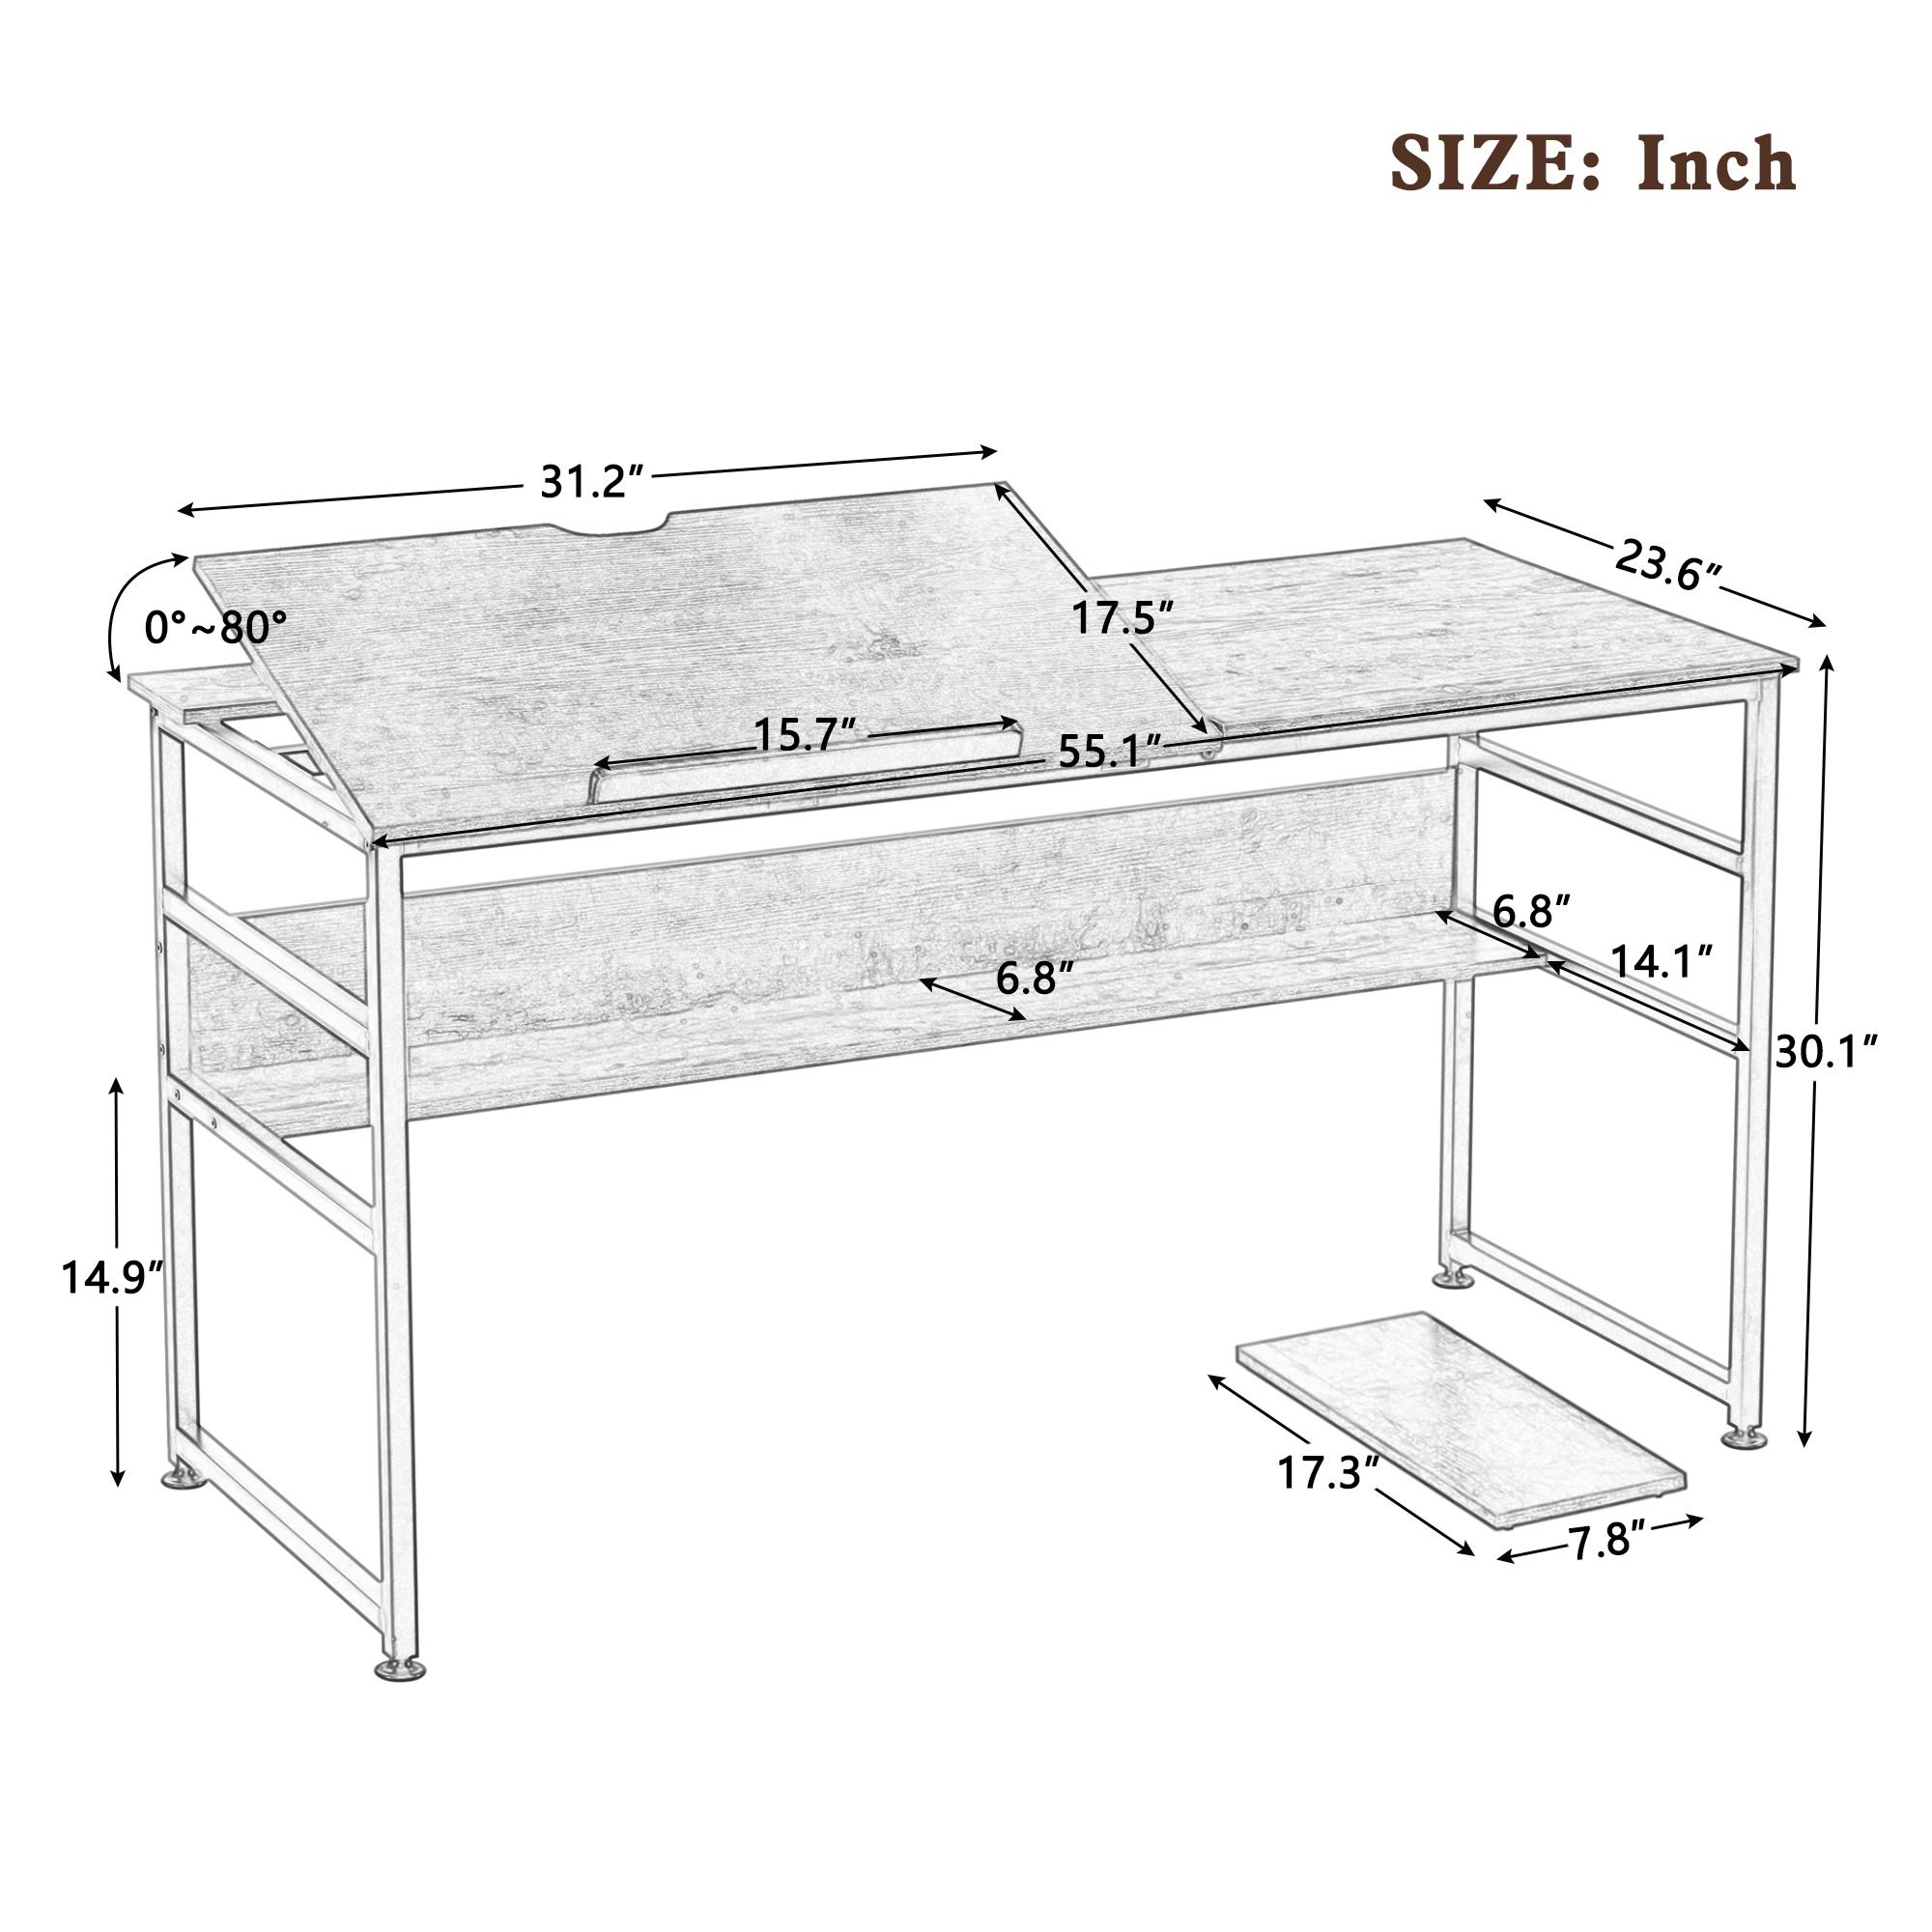 Large Draft Drawing Table With Tiltable Board And Bottom Bookshelf